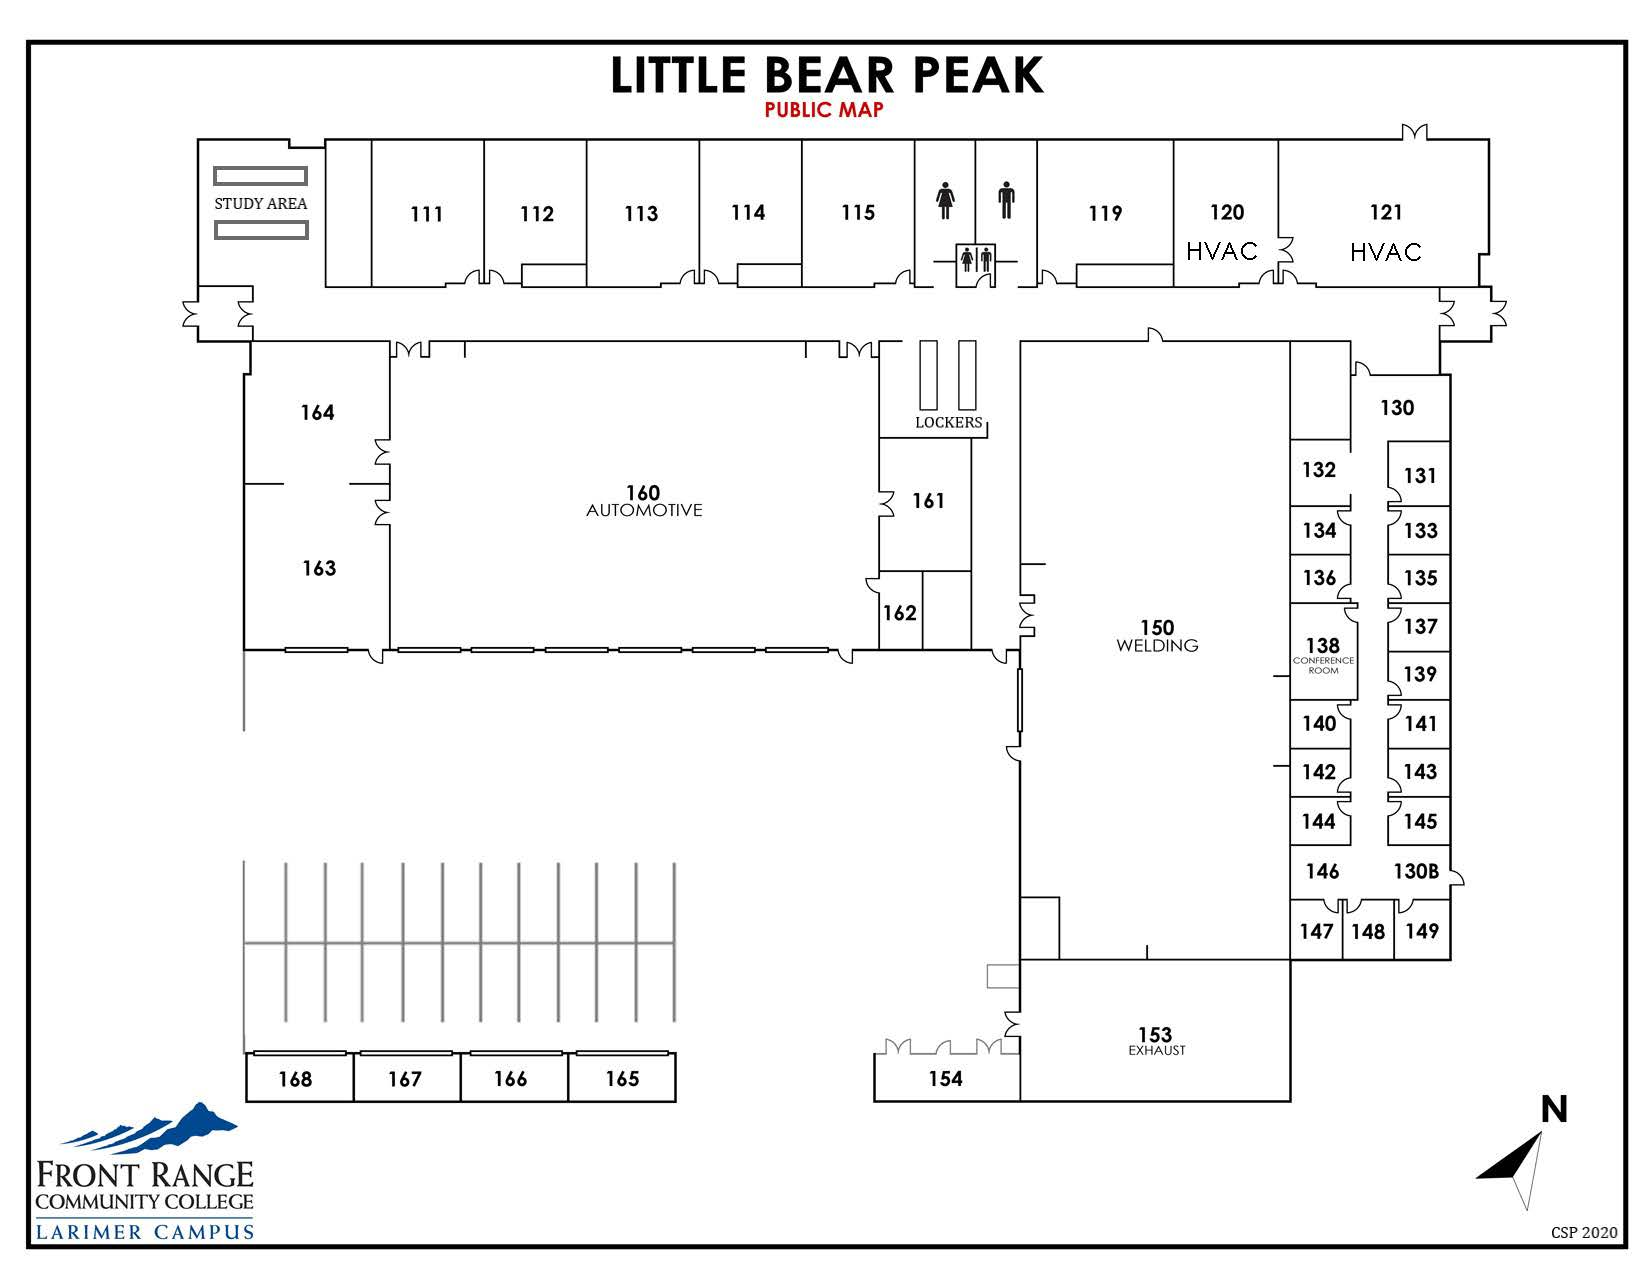 Map of Larimer Campus - Little-Bear-Peak